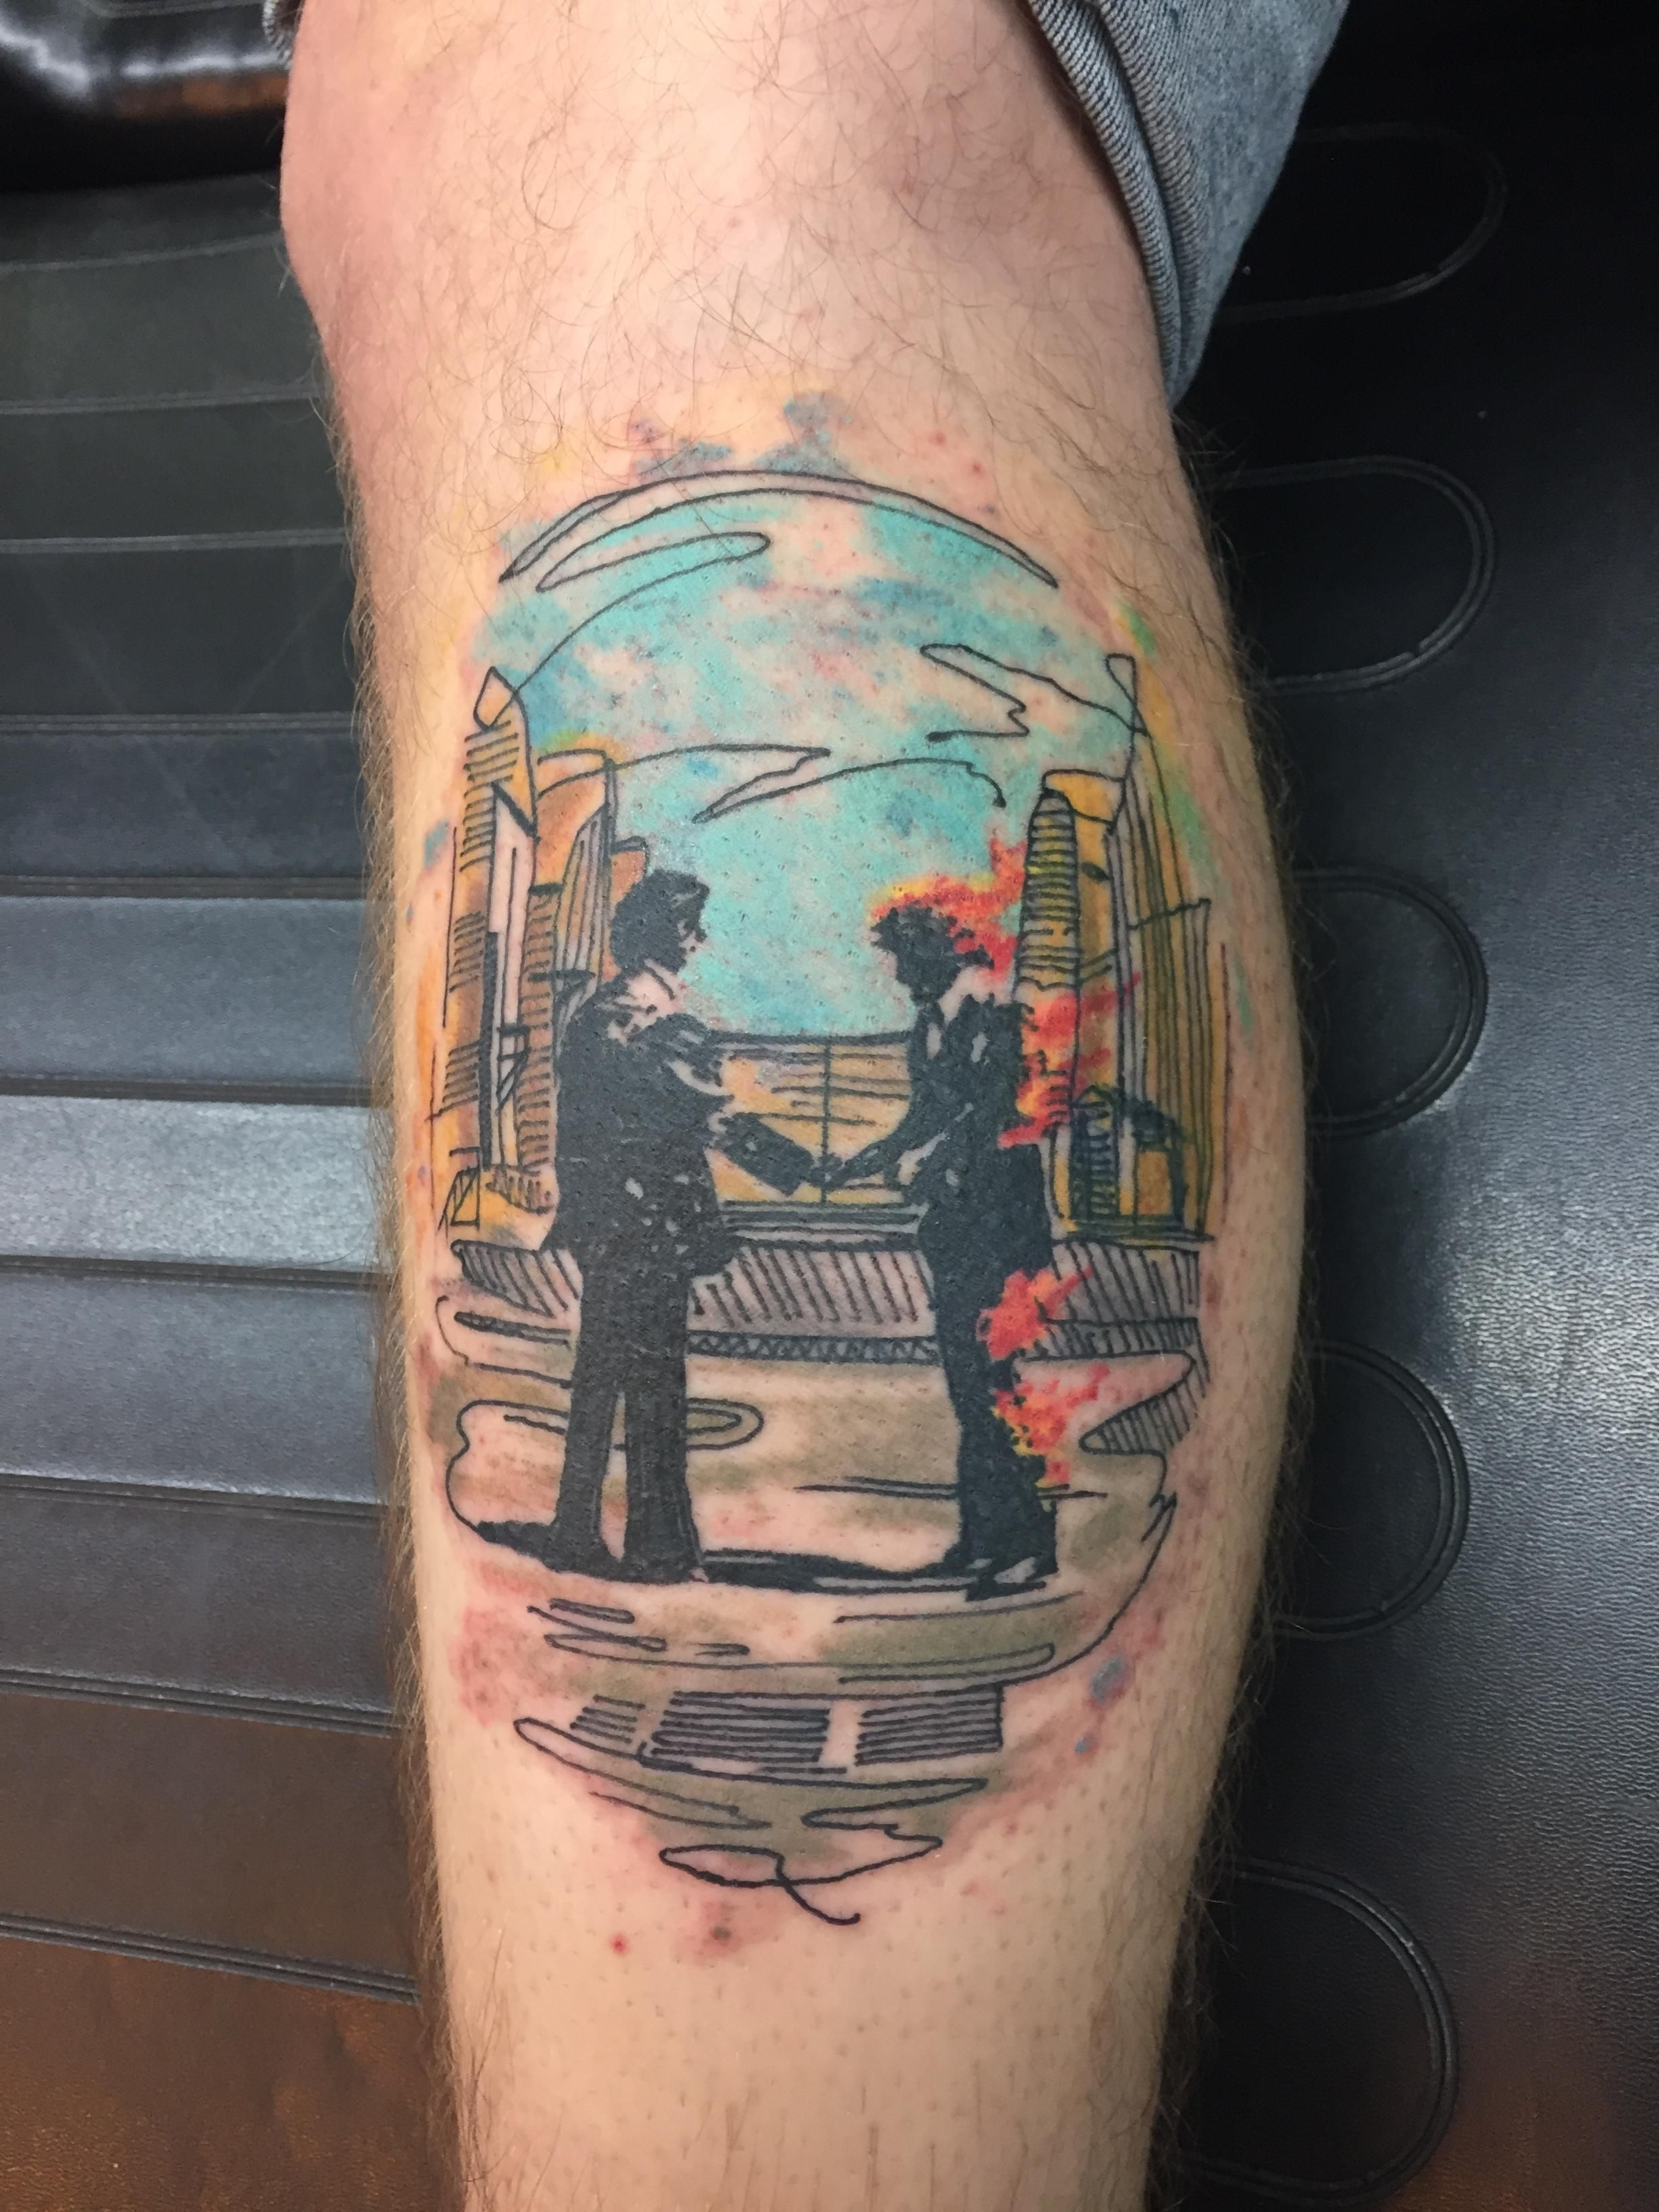 fe5e5994c27f8 Wish You Were Here by Scotty Tedrow at Empire Tattoos in Evansville ...